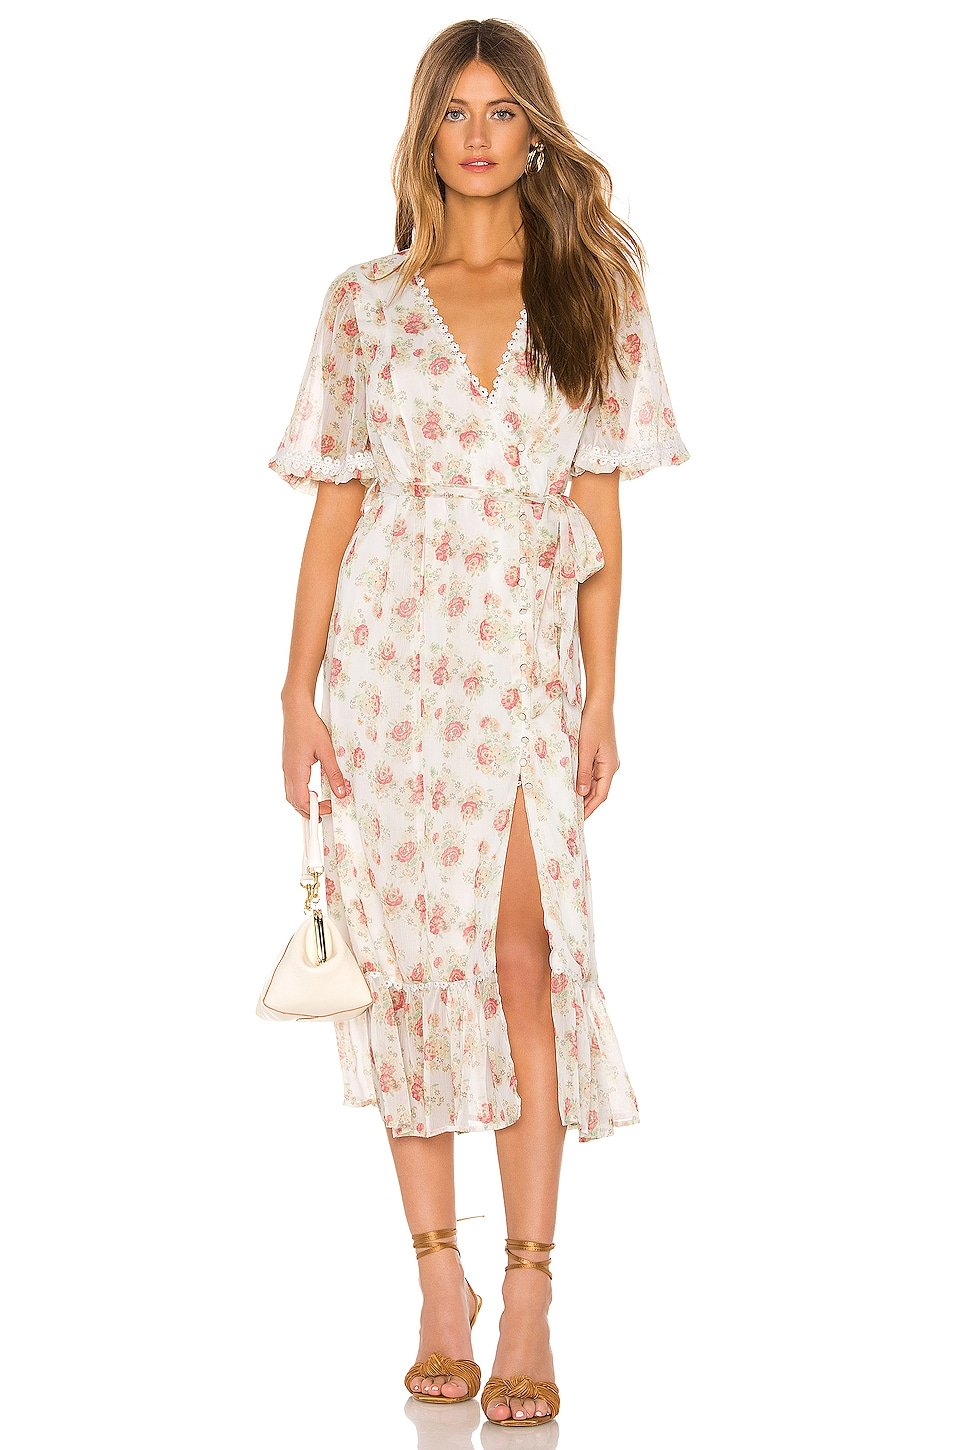 MAJORELLE Alejandra Midi Dress in White Prairie